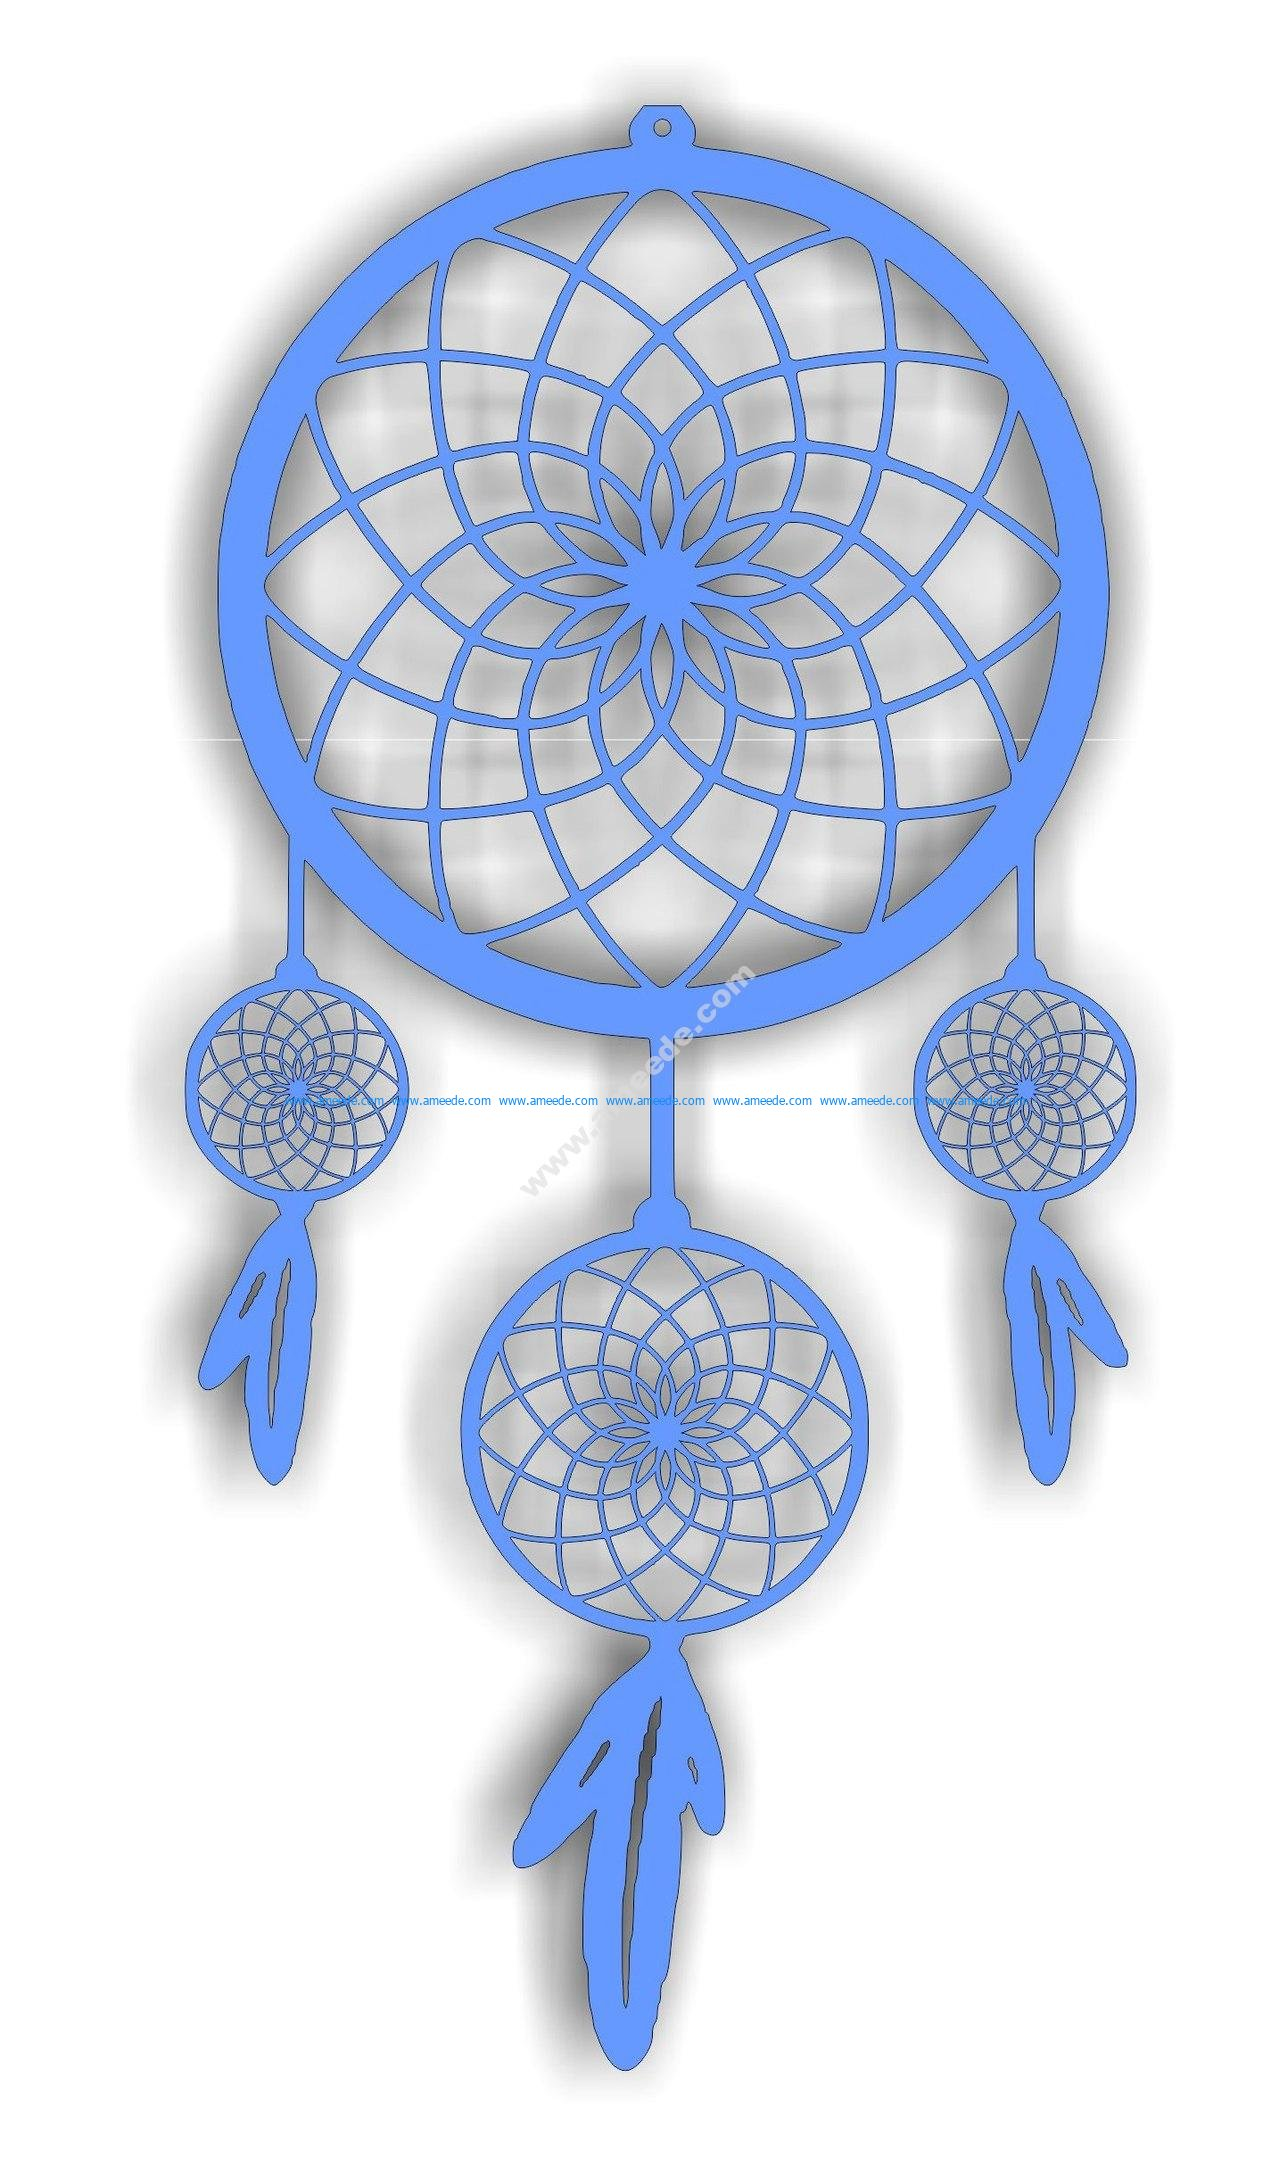 Dream Catcher Cdr File For Cutting